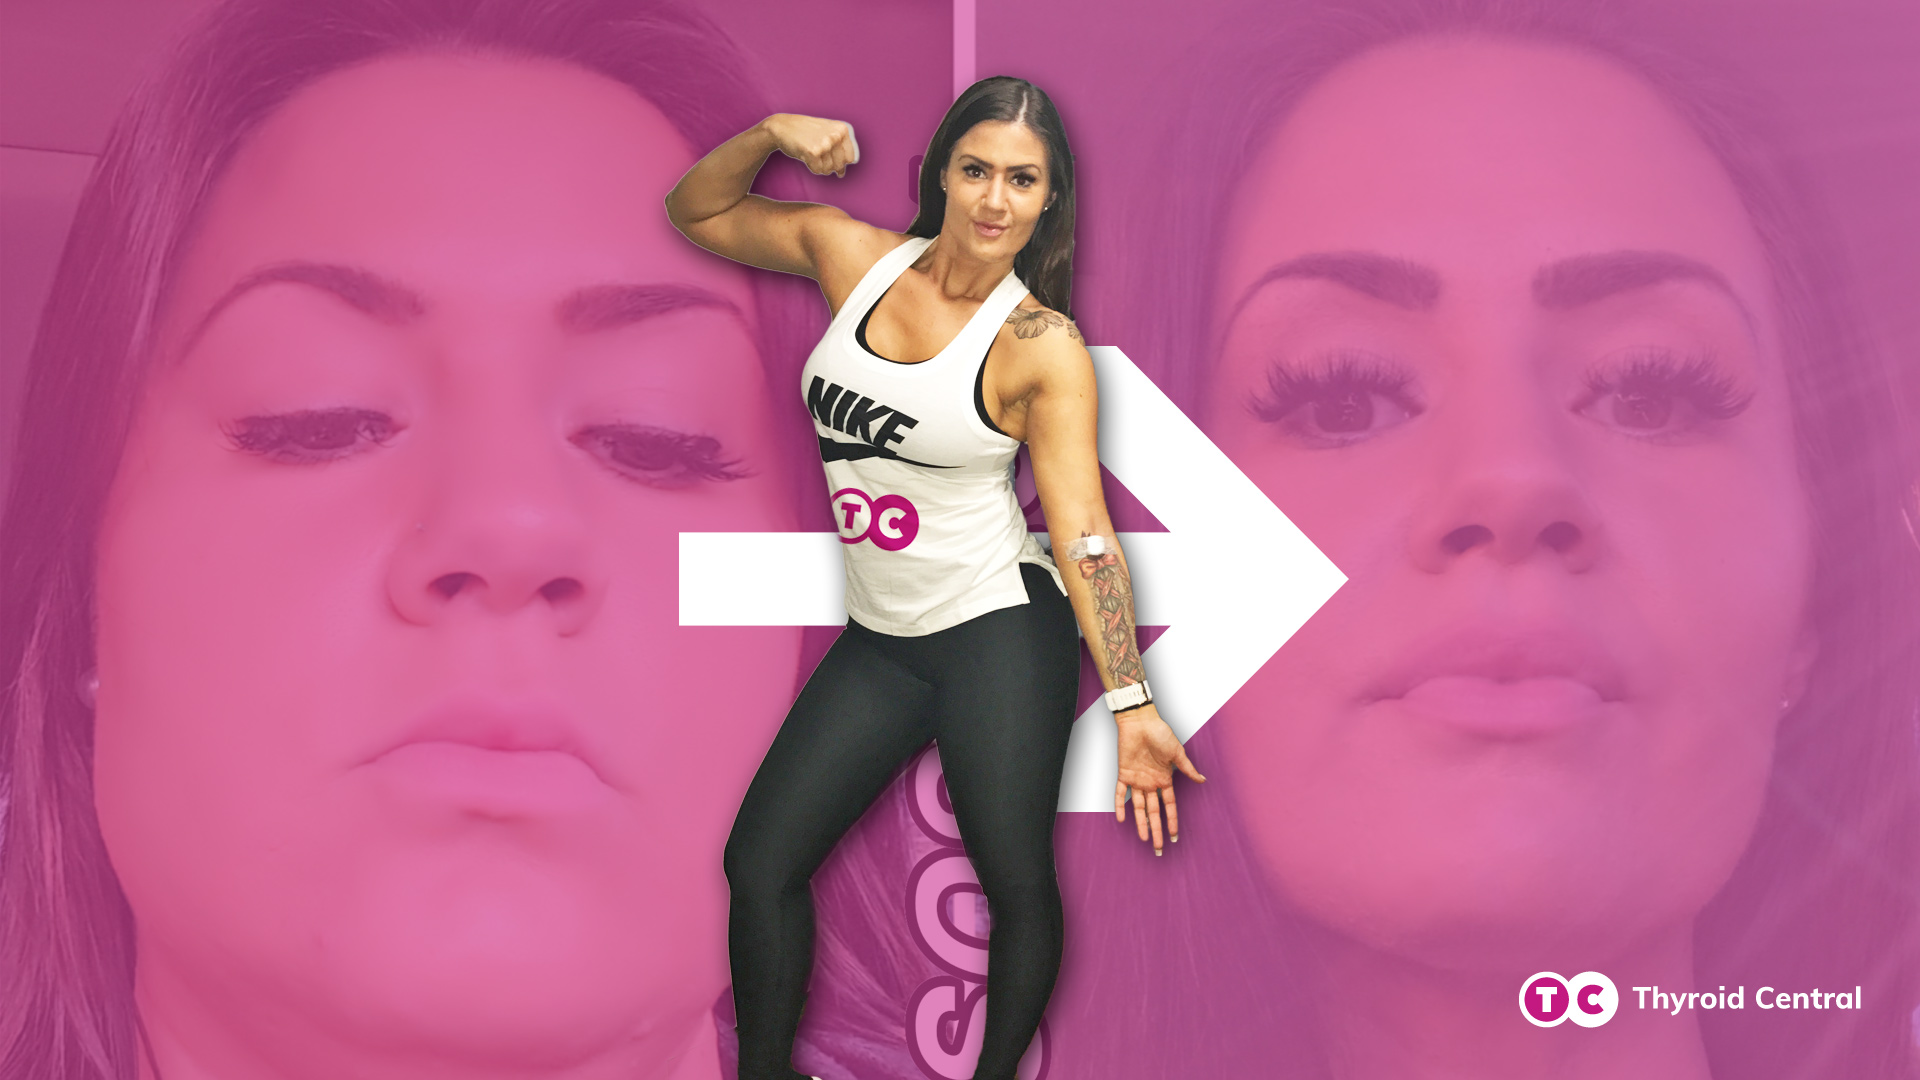 Stacey Wohl Corbin - Weight loss by practicing anti ...